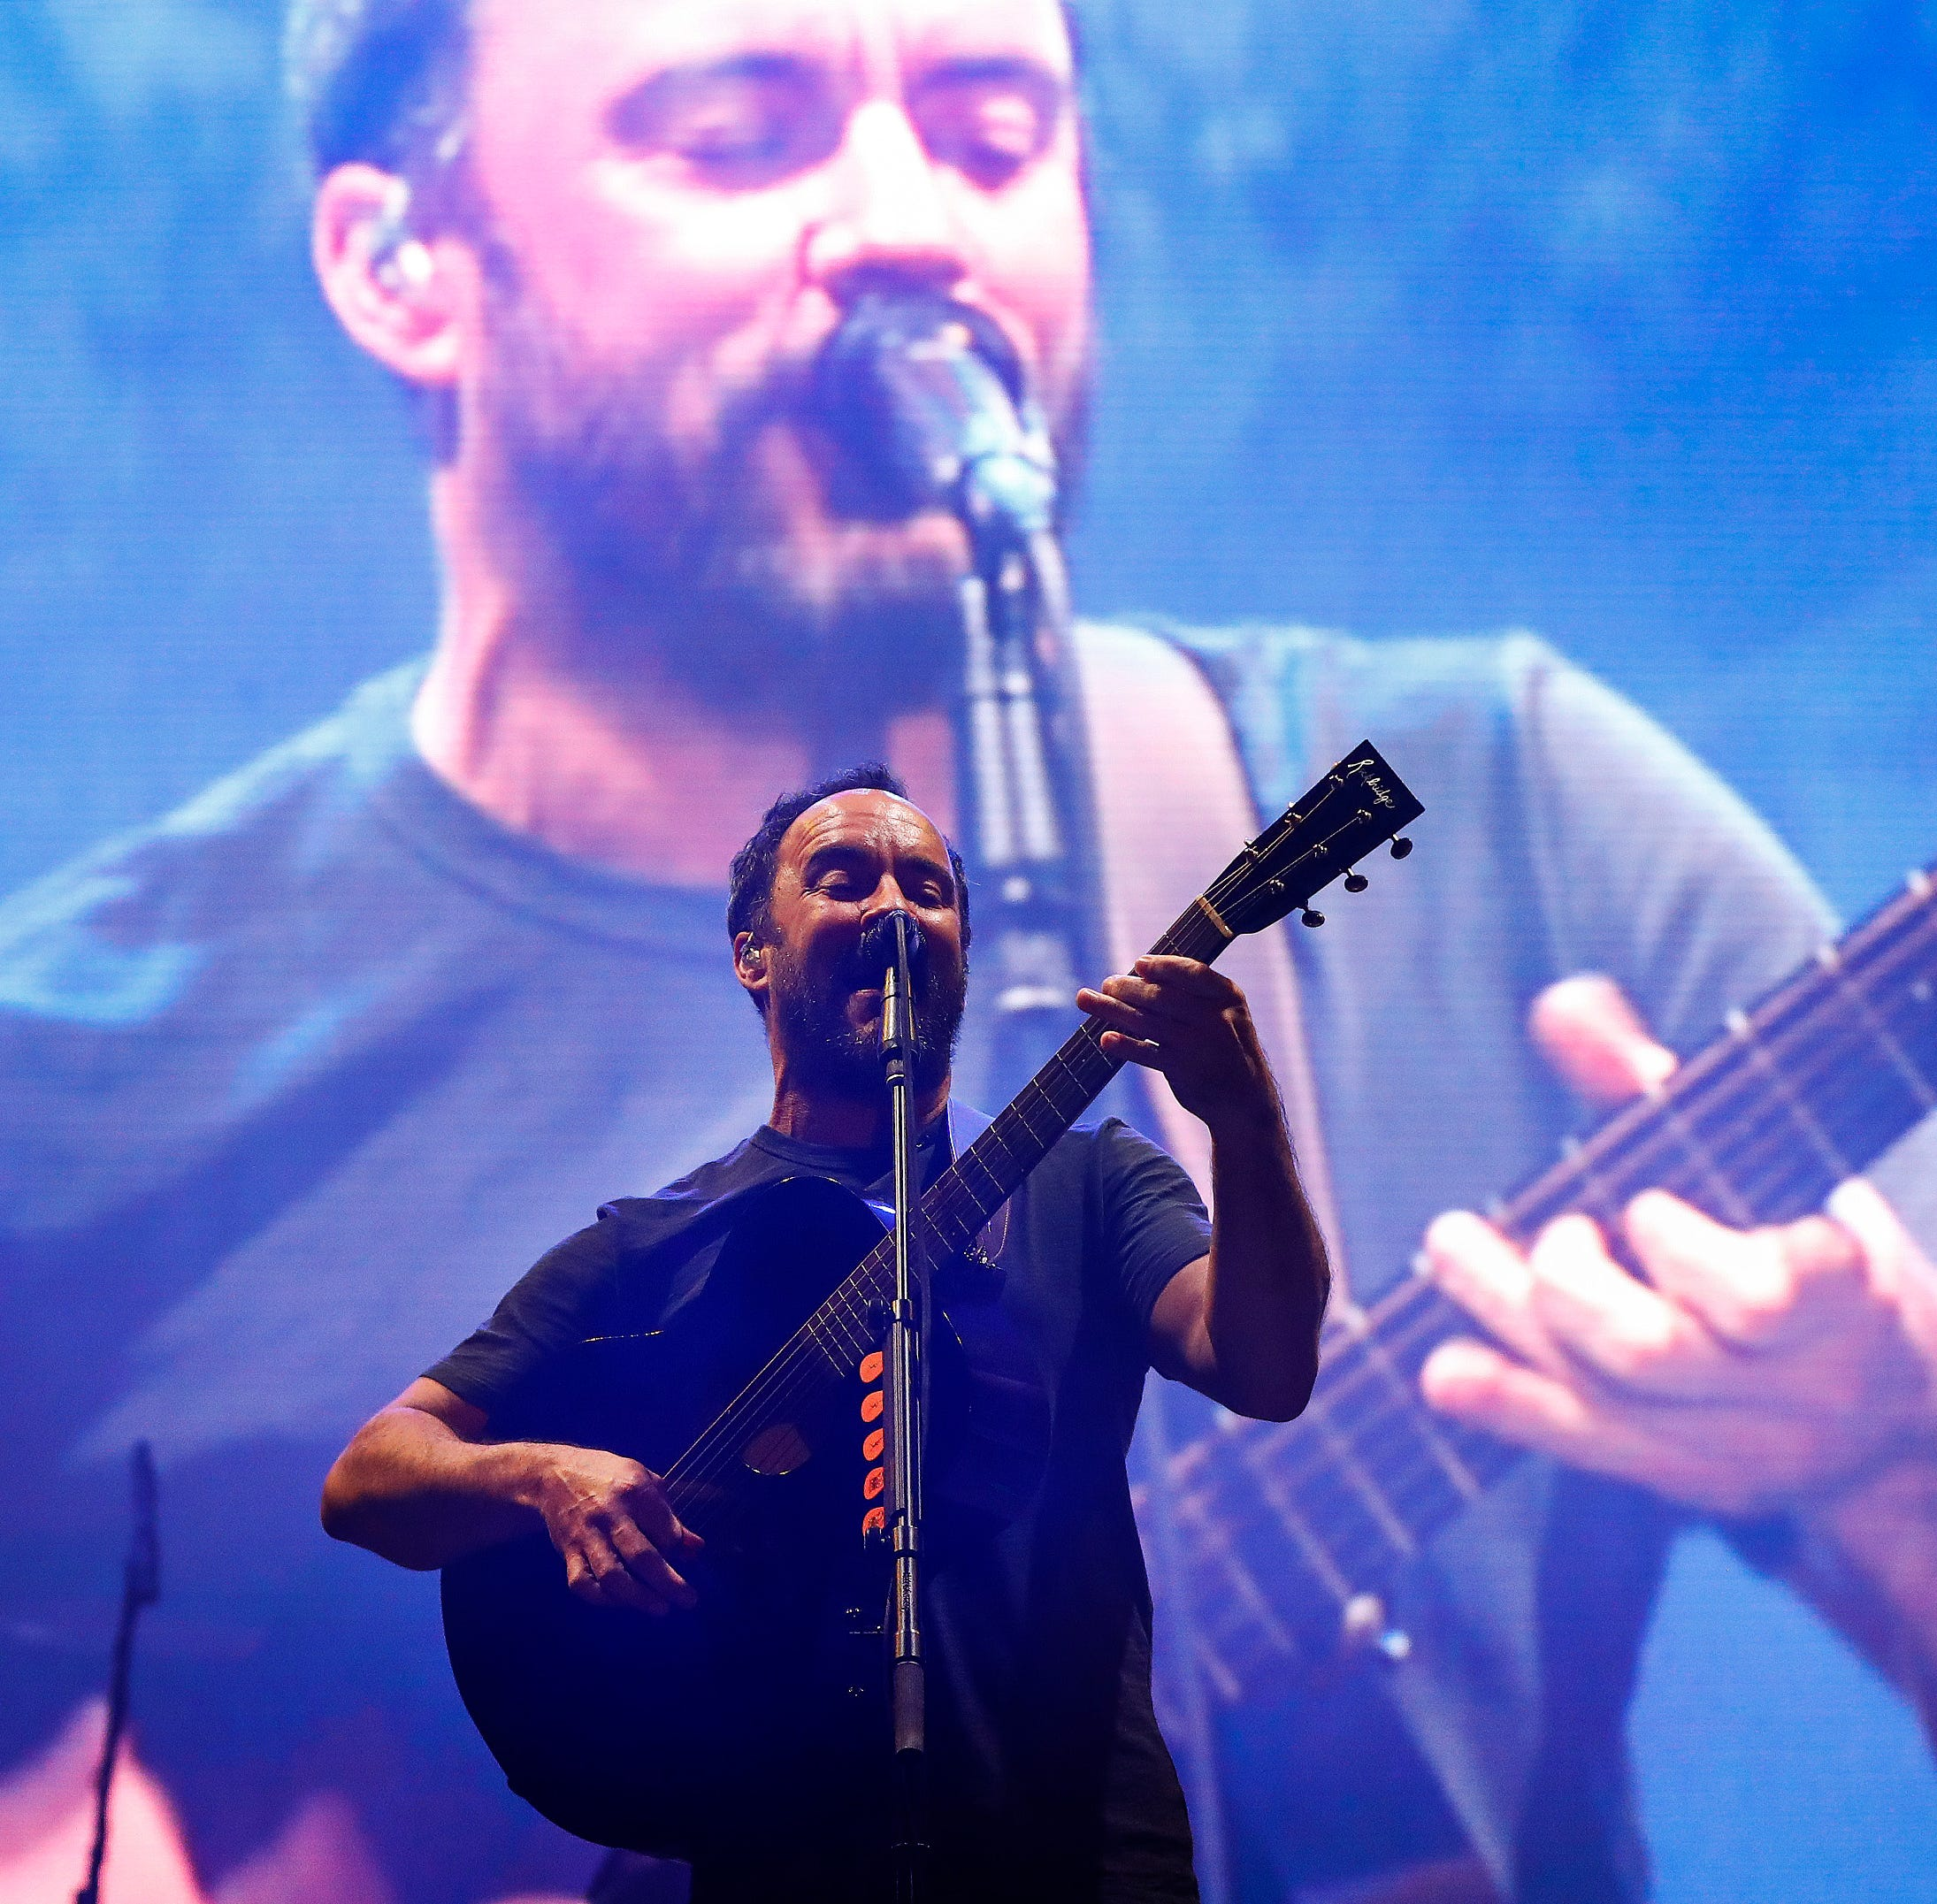 Dave Matthews Band entertains fans of all ages at Beale Street Music Festival